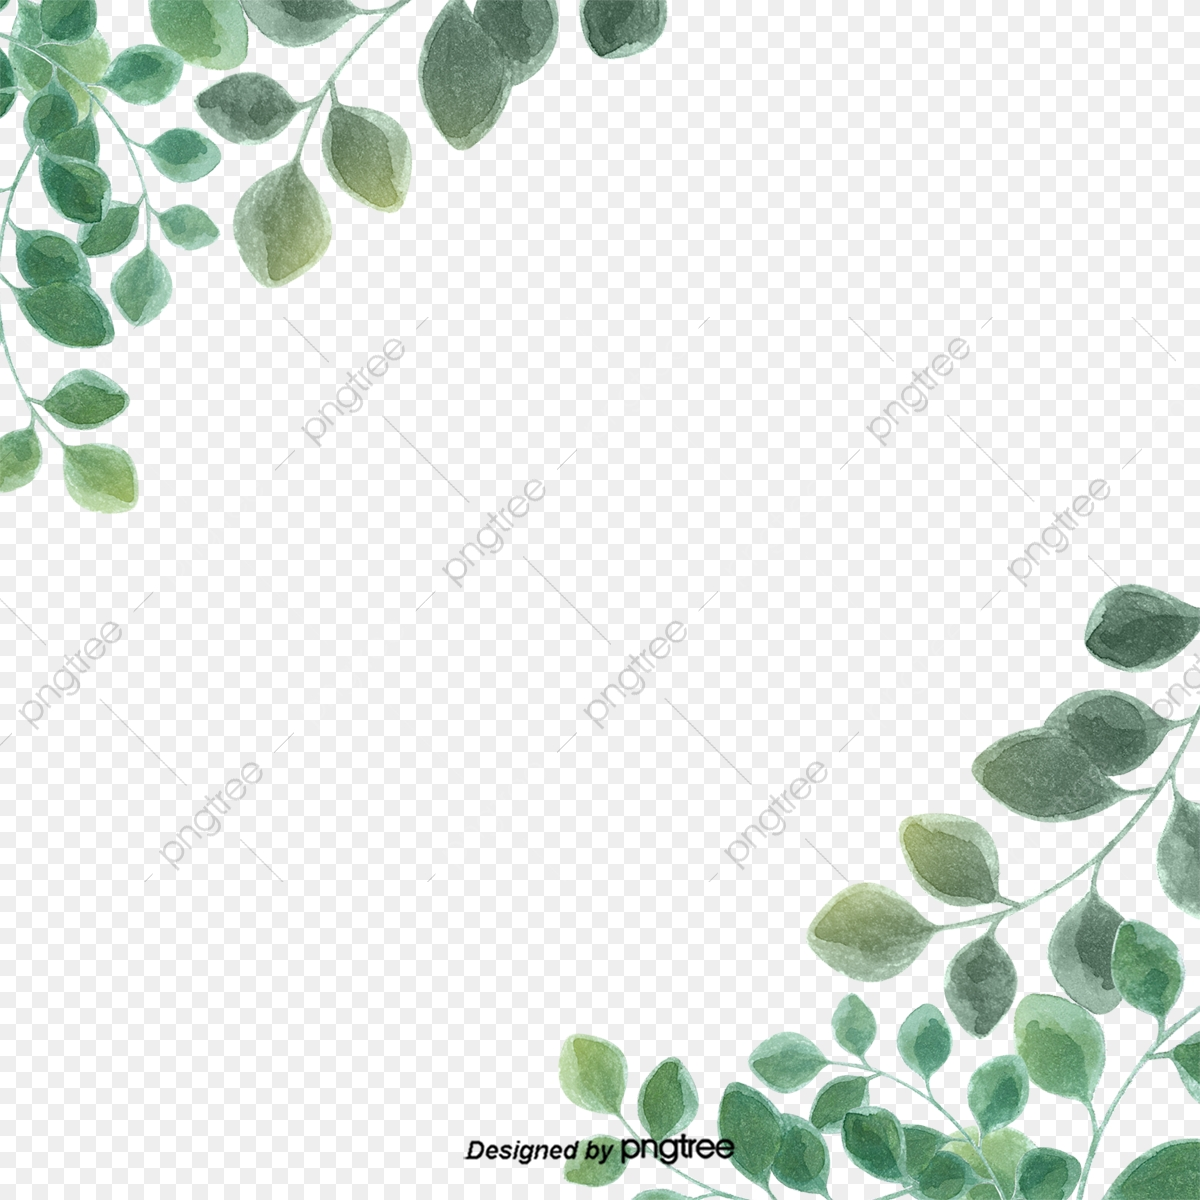 Green Simple Eucalyptus Leaf Border, Leaf, Eucalyptus, Eucalyptus.